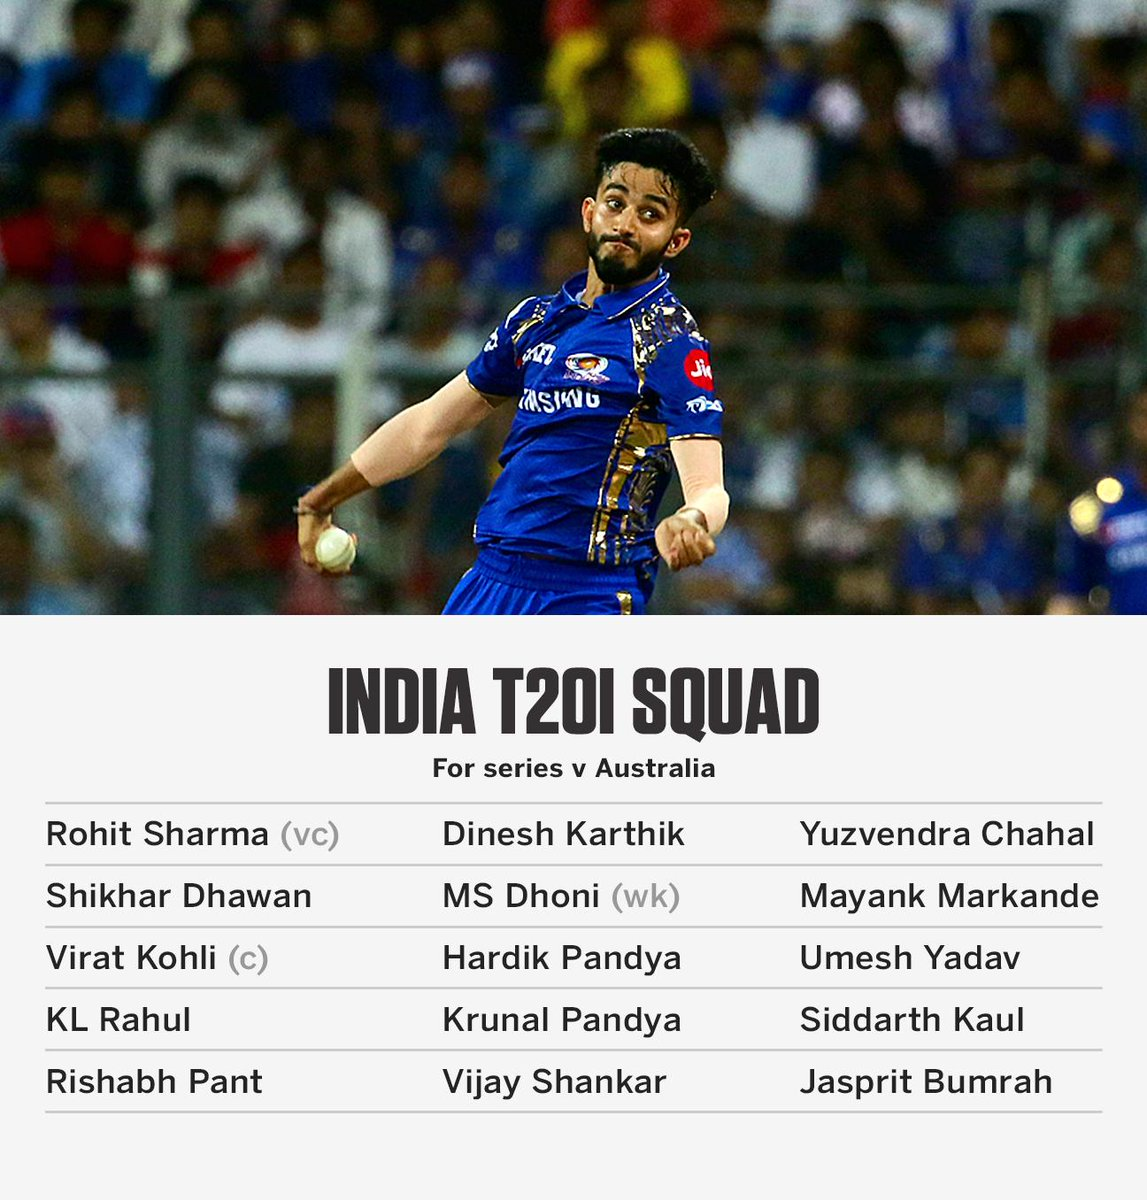 Mayank Markande included in India's T20I squad for the series against Australia  https://t.co/9OJYYkMQvv #INDvAUS